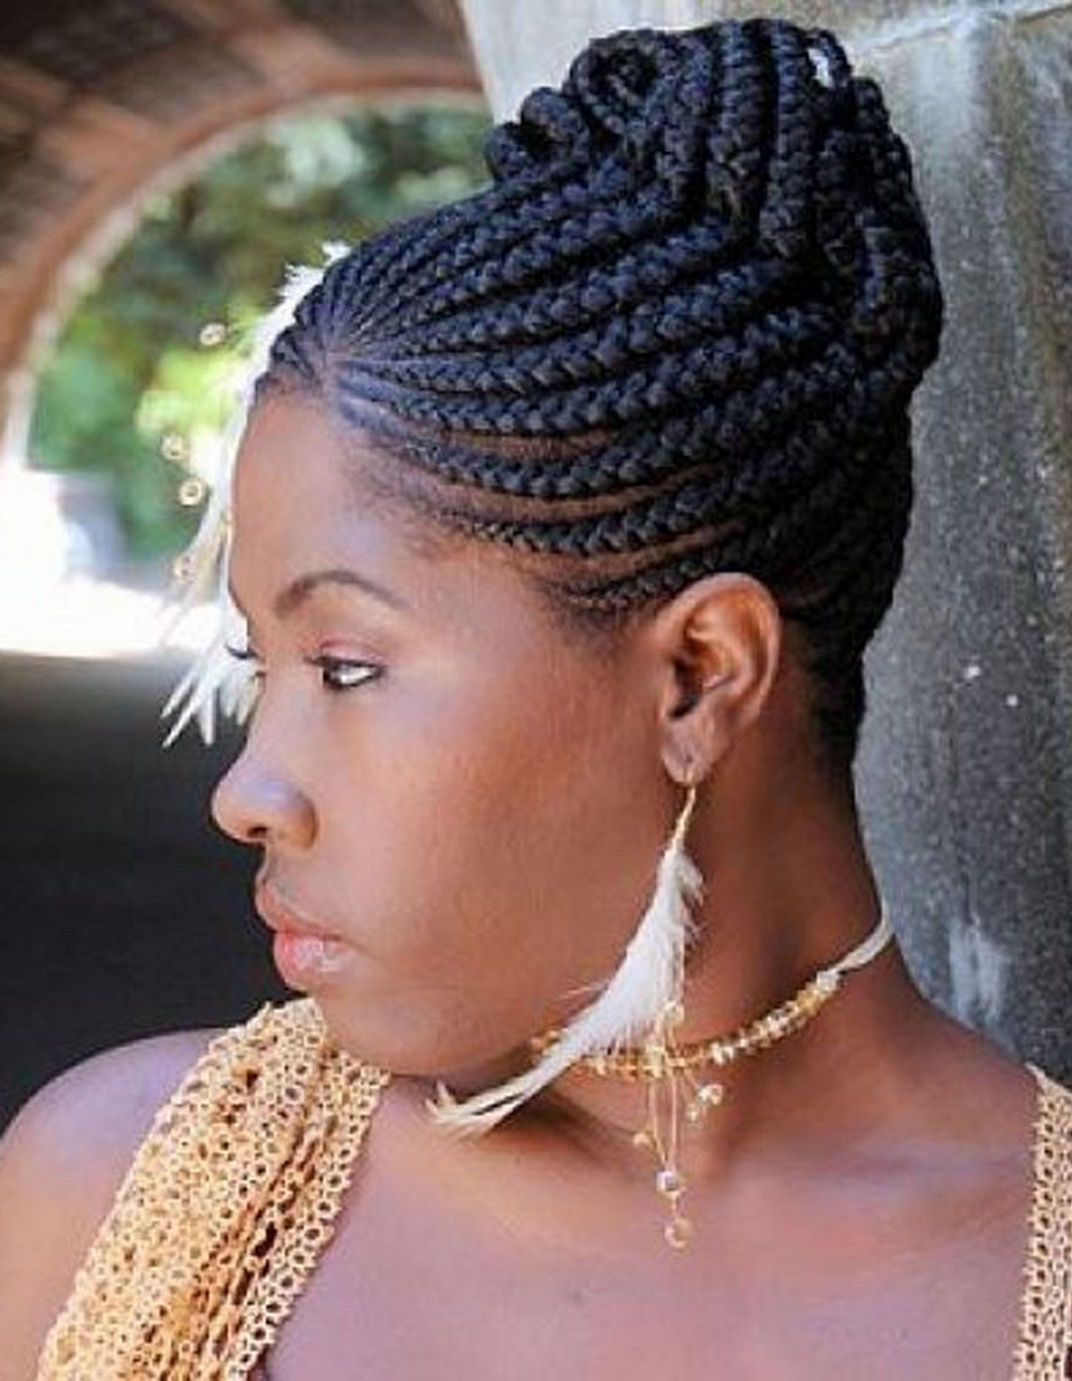 Braids Updo Hairstyles Photos Of Black Braided Hairstyles Urban Hair Co In Black Braids Updo Hairstyles (View 13 of 15)